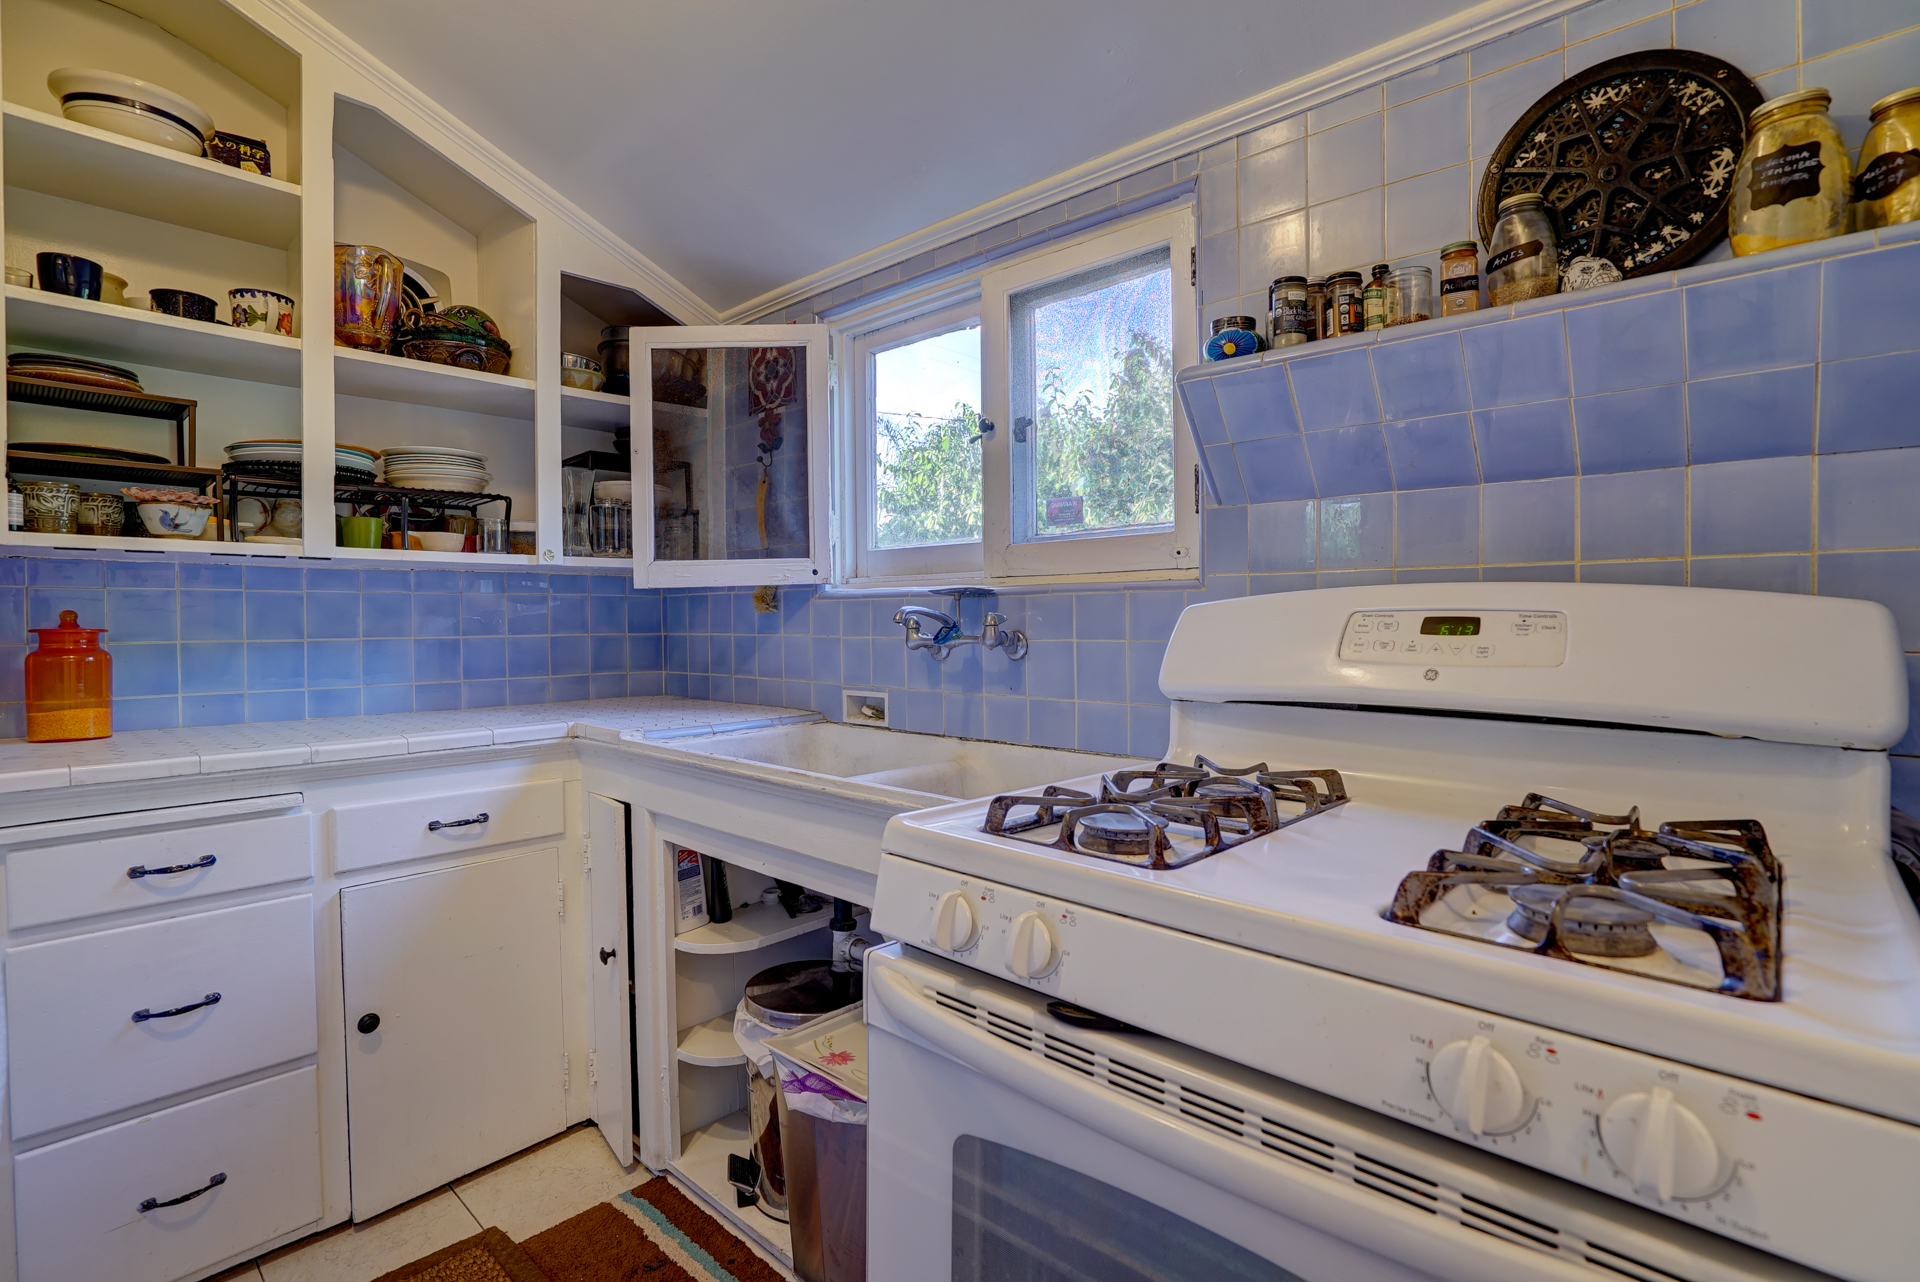 Cozy vintage kitchen with gas stove.